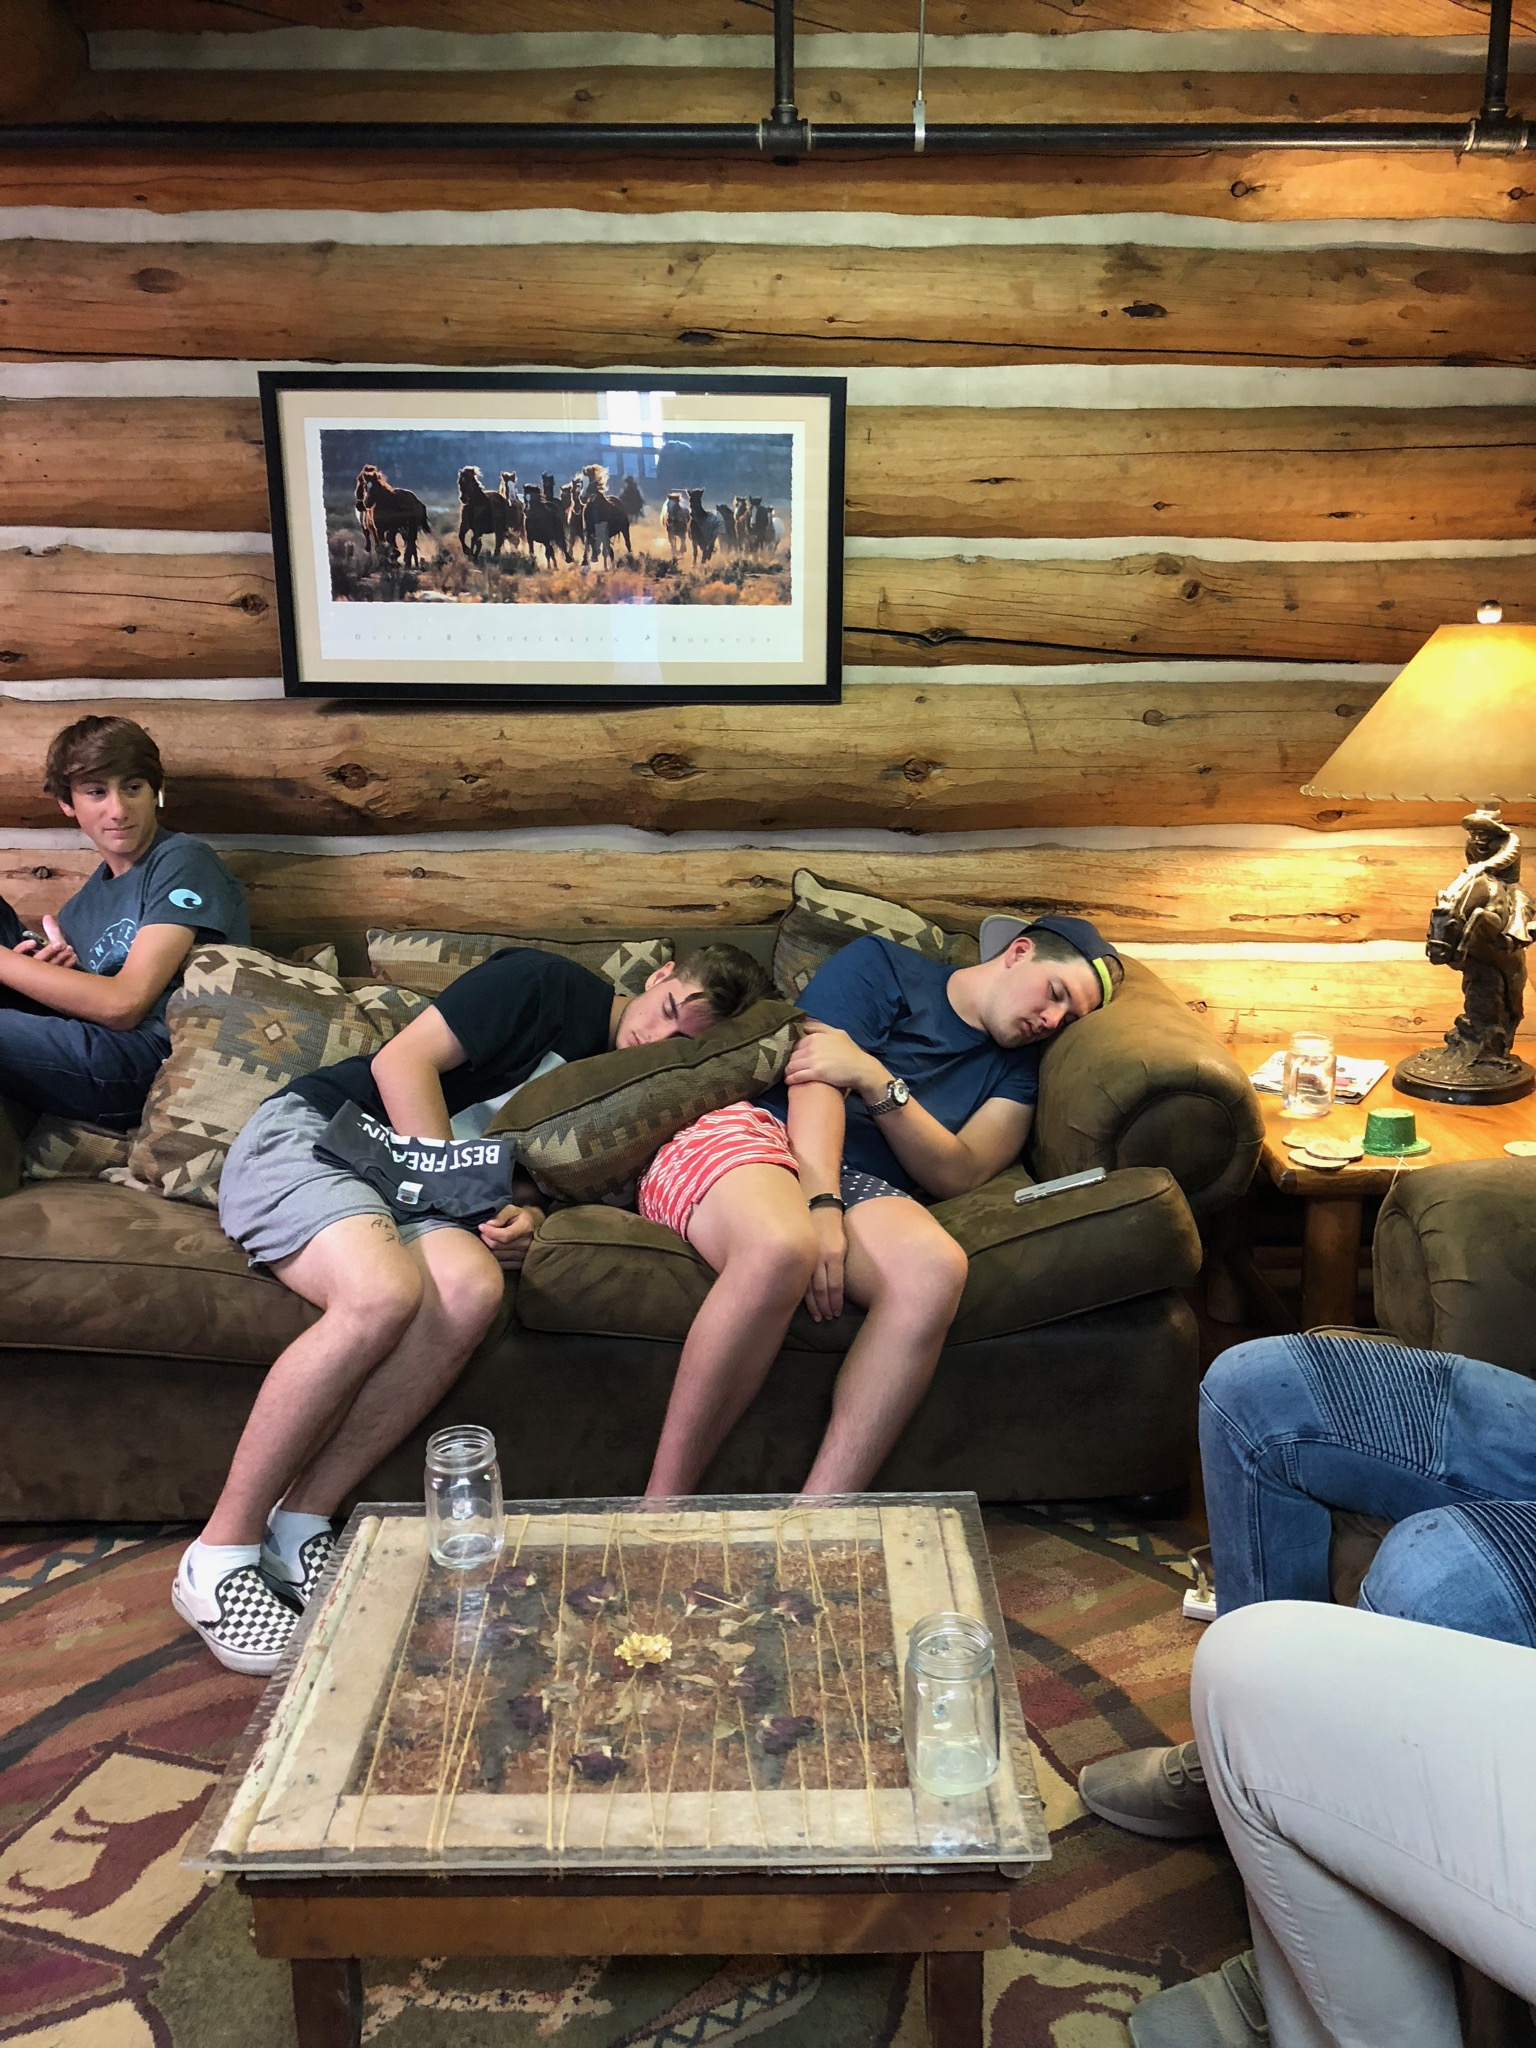 Young men napping on a sofa.